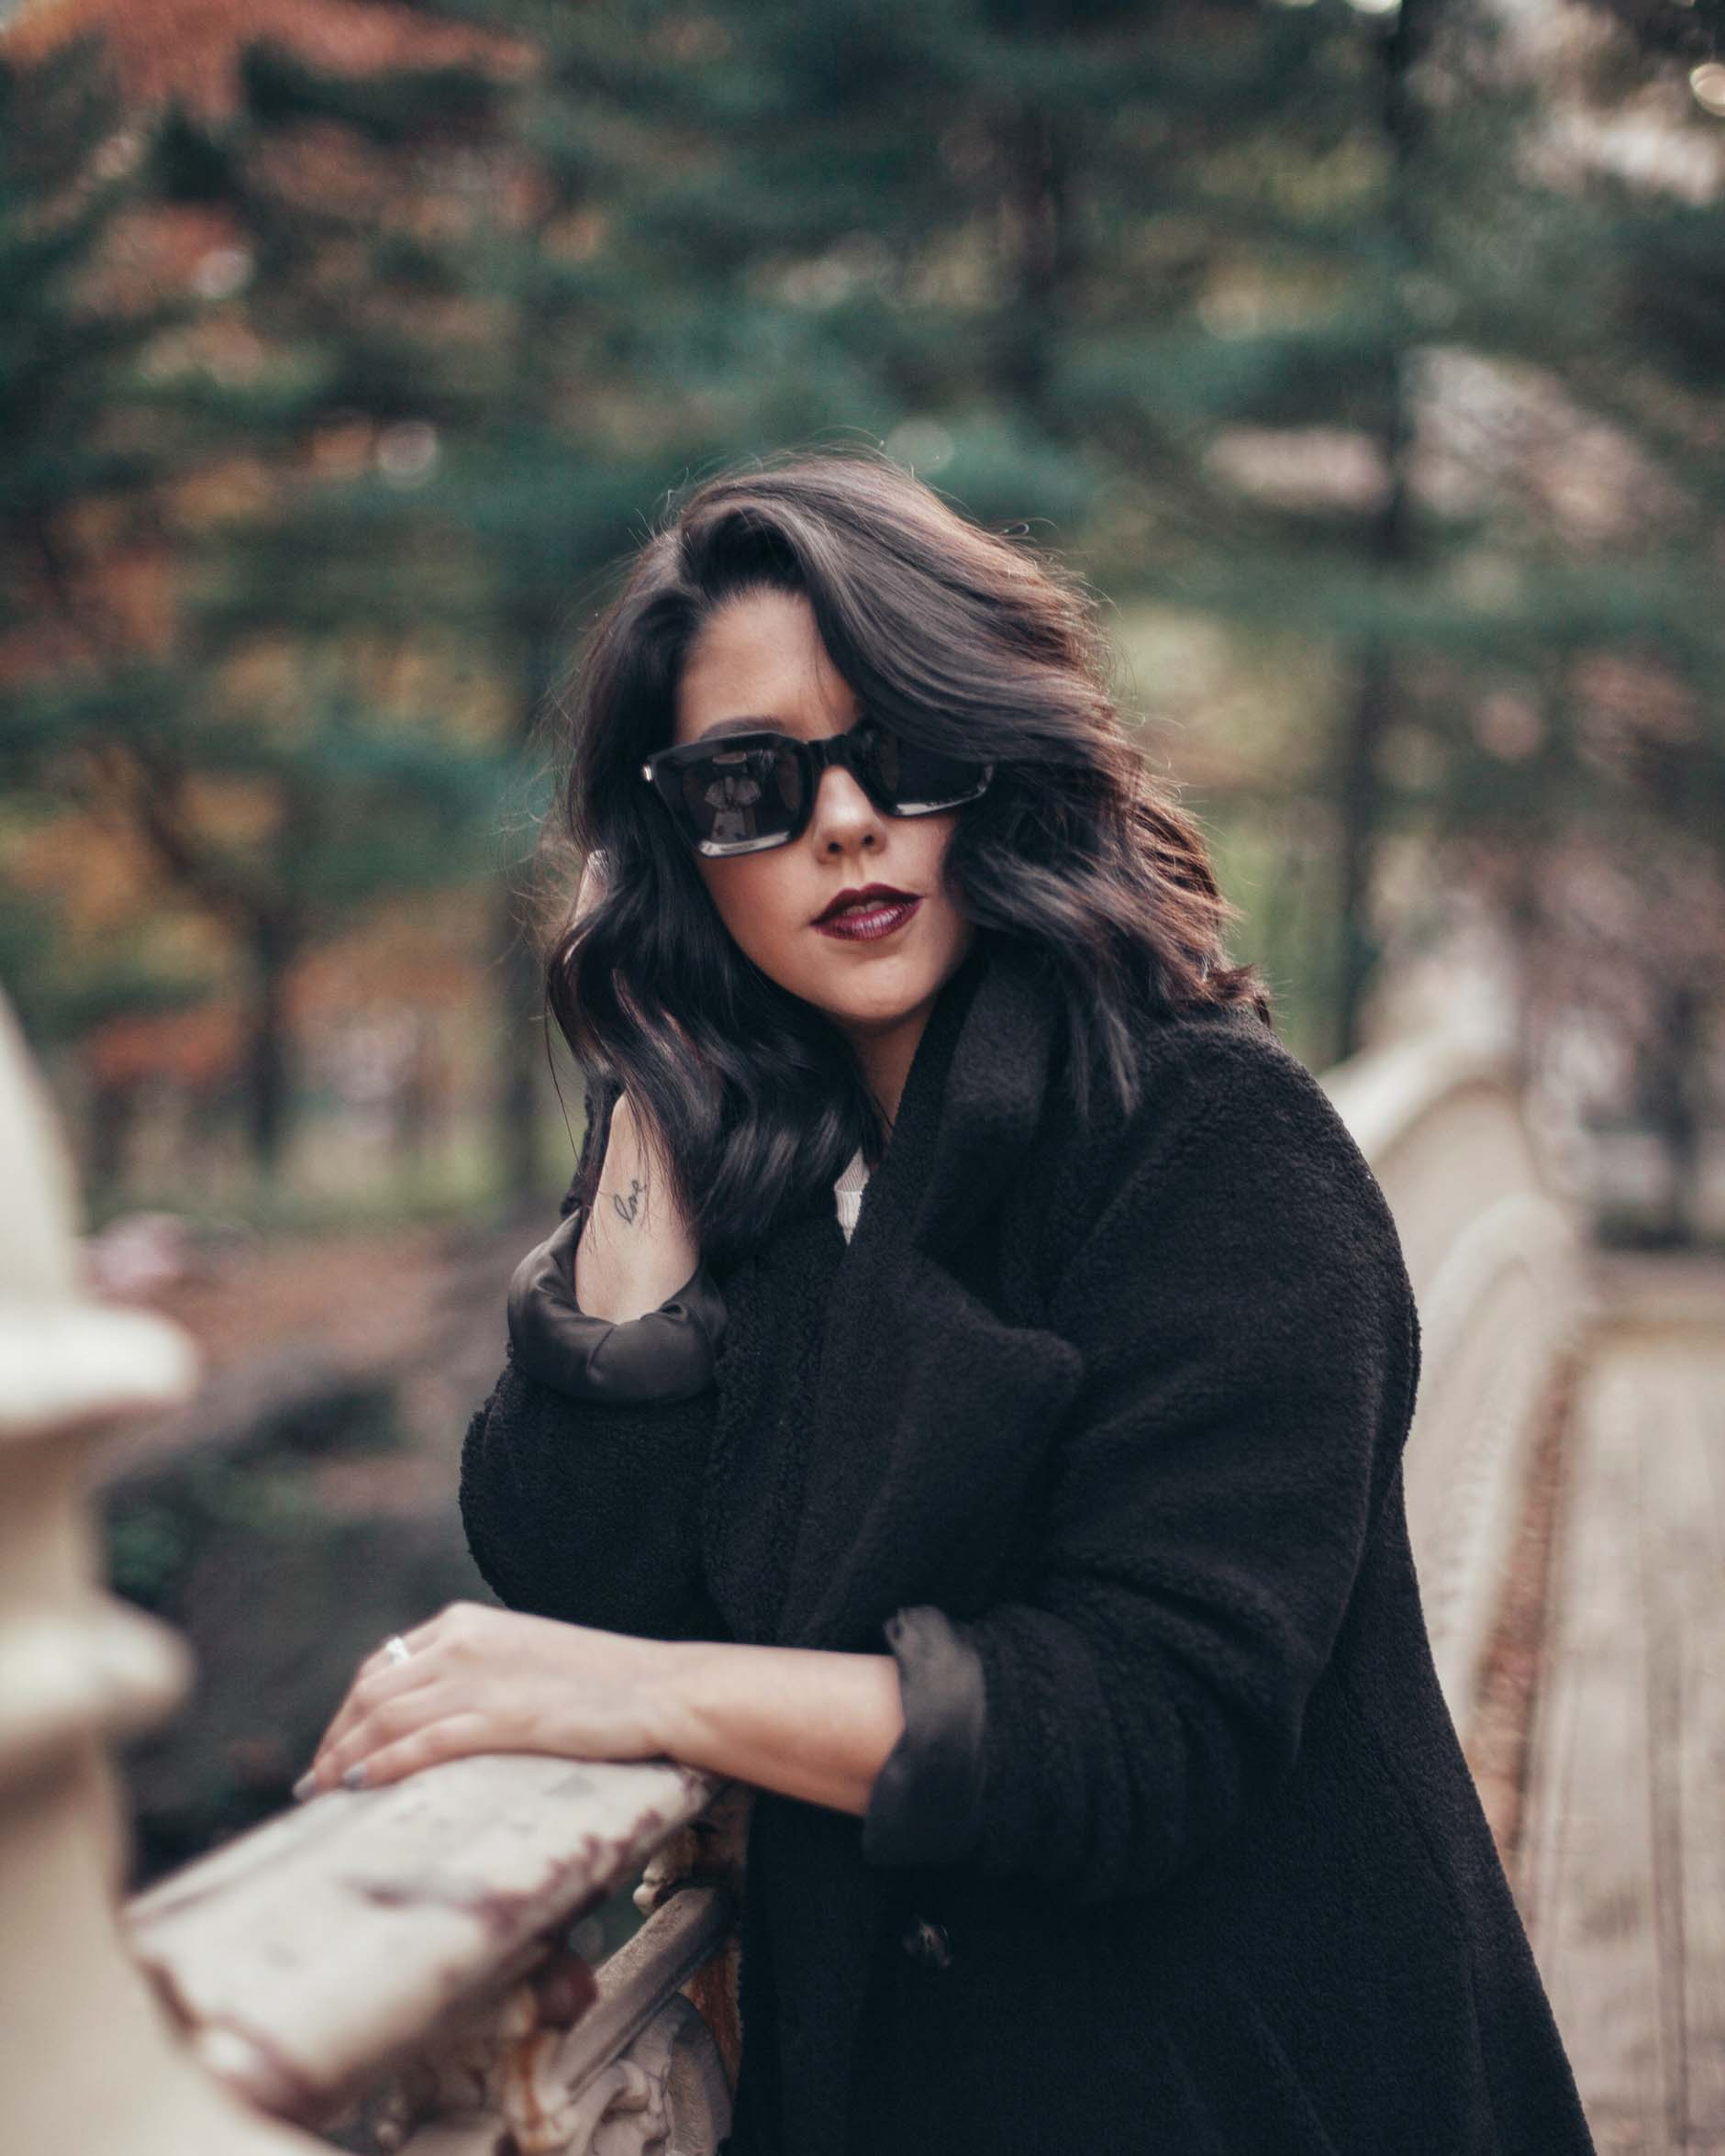 lifestyle blogger naty michele at central park